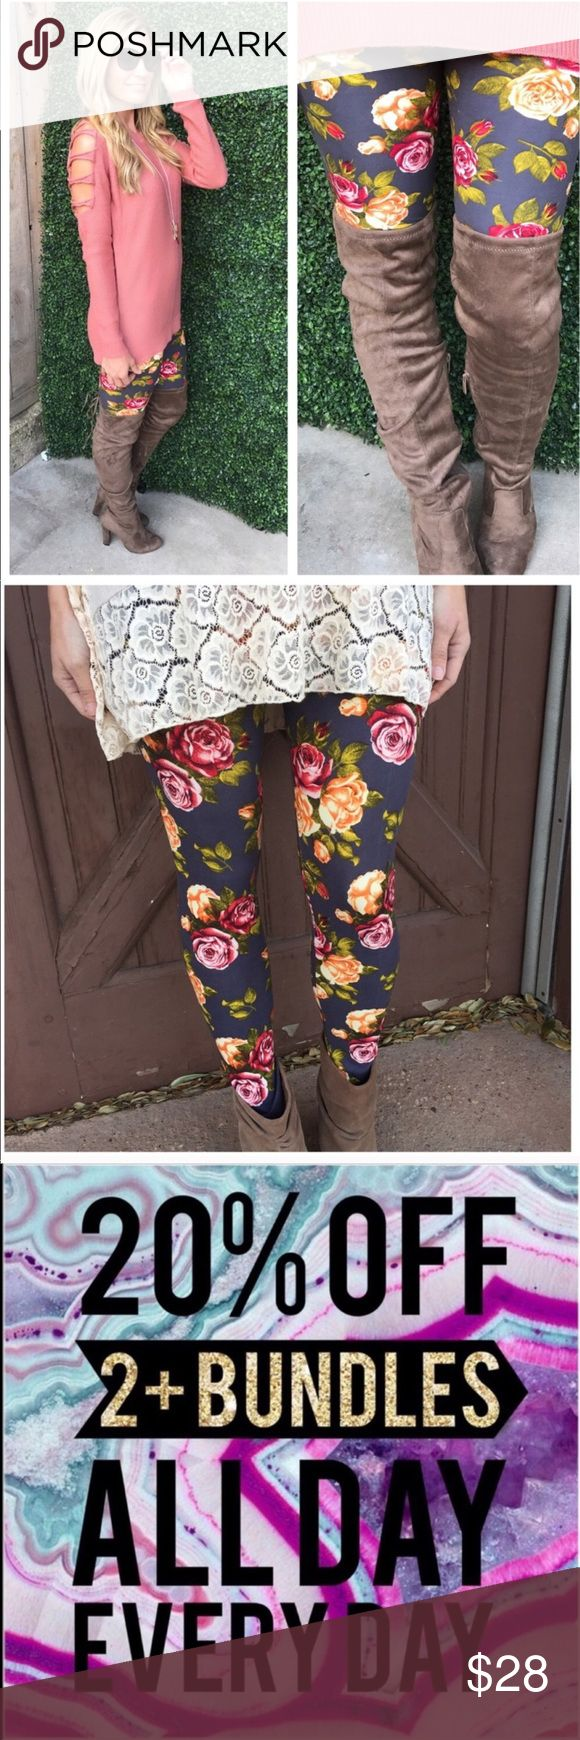 Charcoal Floral Print Buttery Soft Leggings 92% Polyester • 8% Spandex • one size fits {2-12} • buttery soft leggings• handwash• good quality   • Offers Welcome • Bundle Discounts  • Suggested User • Fast Shipper Infinity Raine Pants Leggings